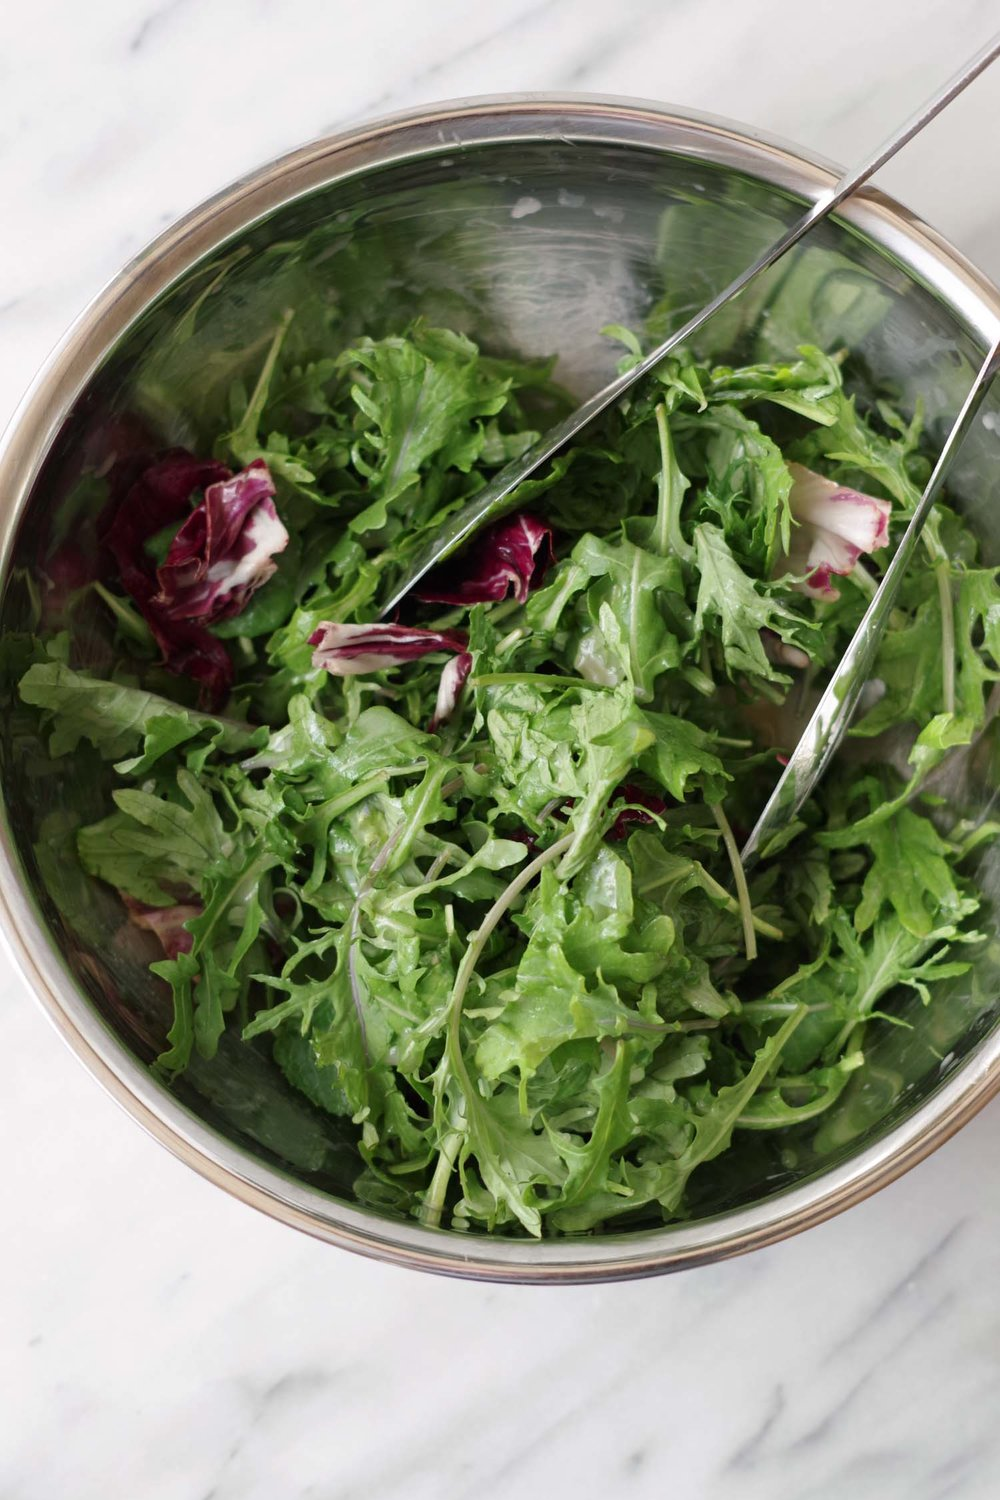 Toss your next salad with The Go-To Oild-Free Salad dressing, by Beautiful Ingredient